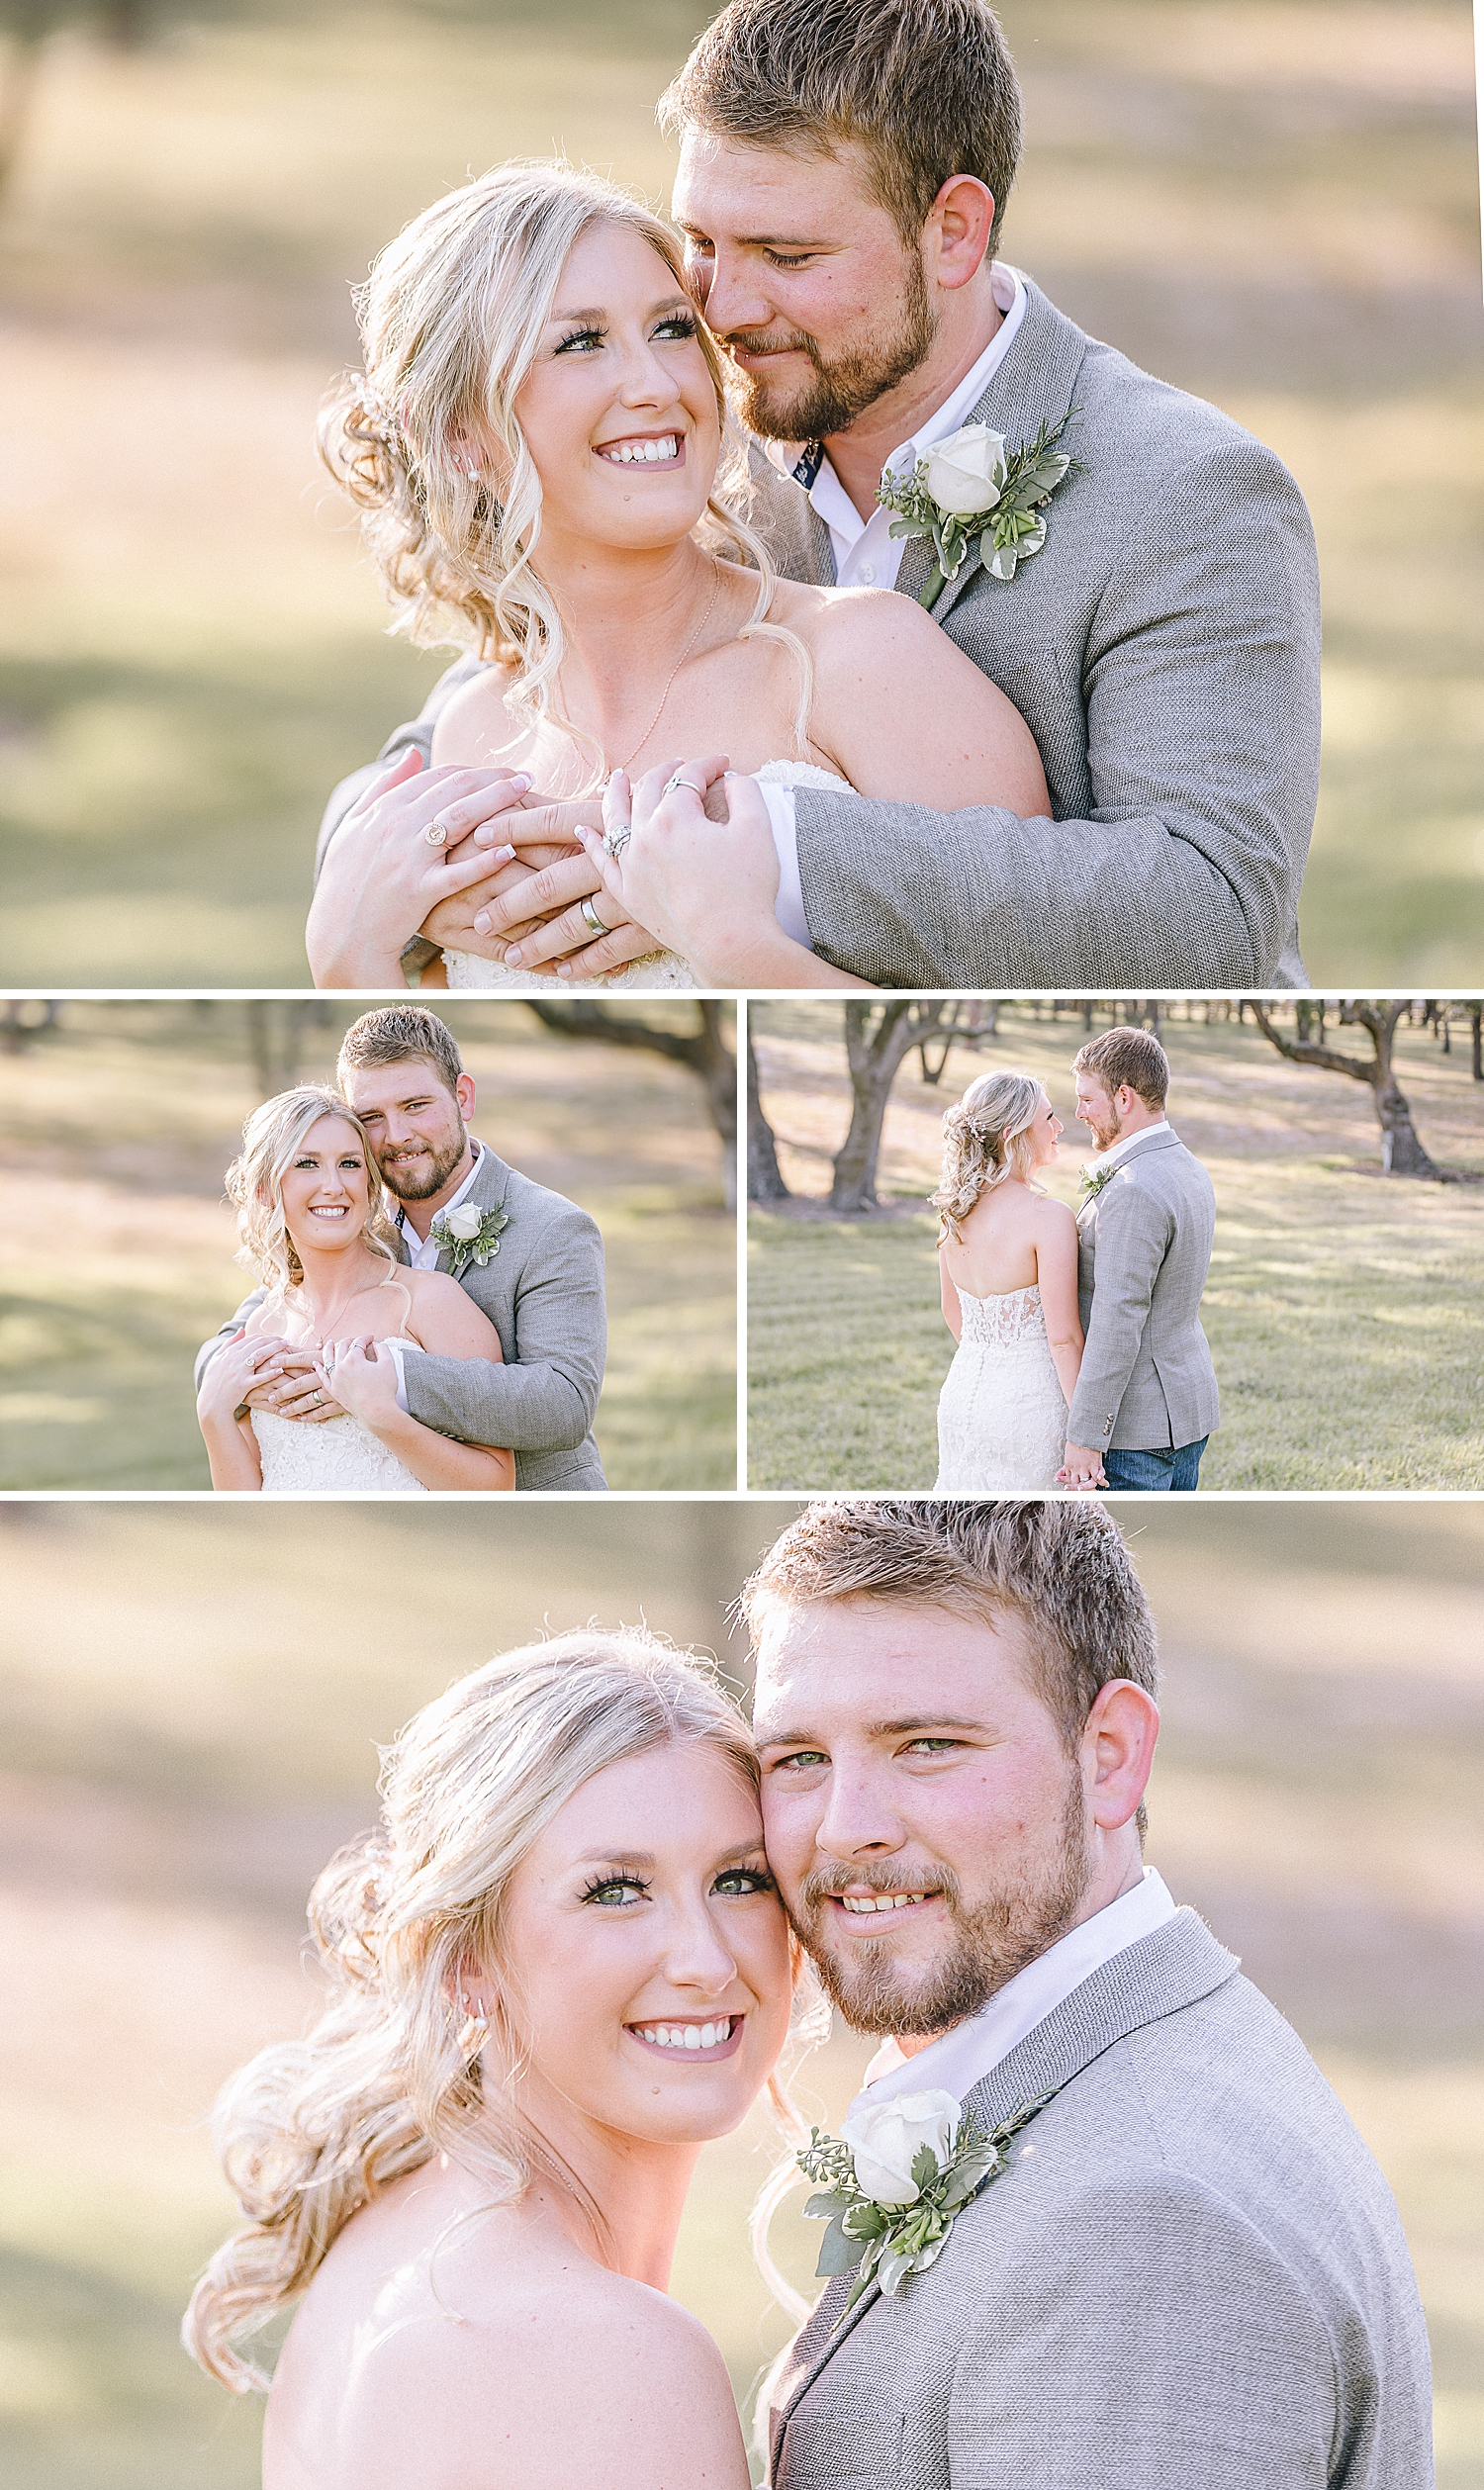 Rackler-Ranch-LaVernia-Texas-Wedding-Carly-Barton-Photography_0105.jpg